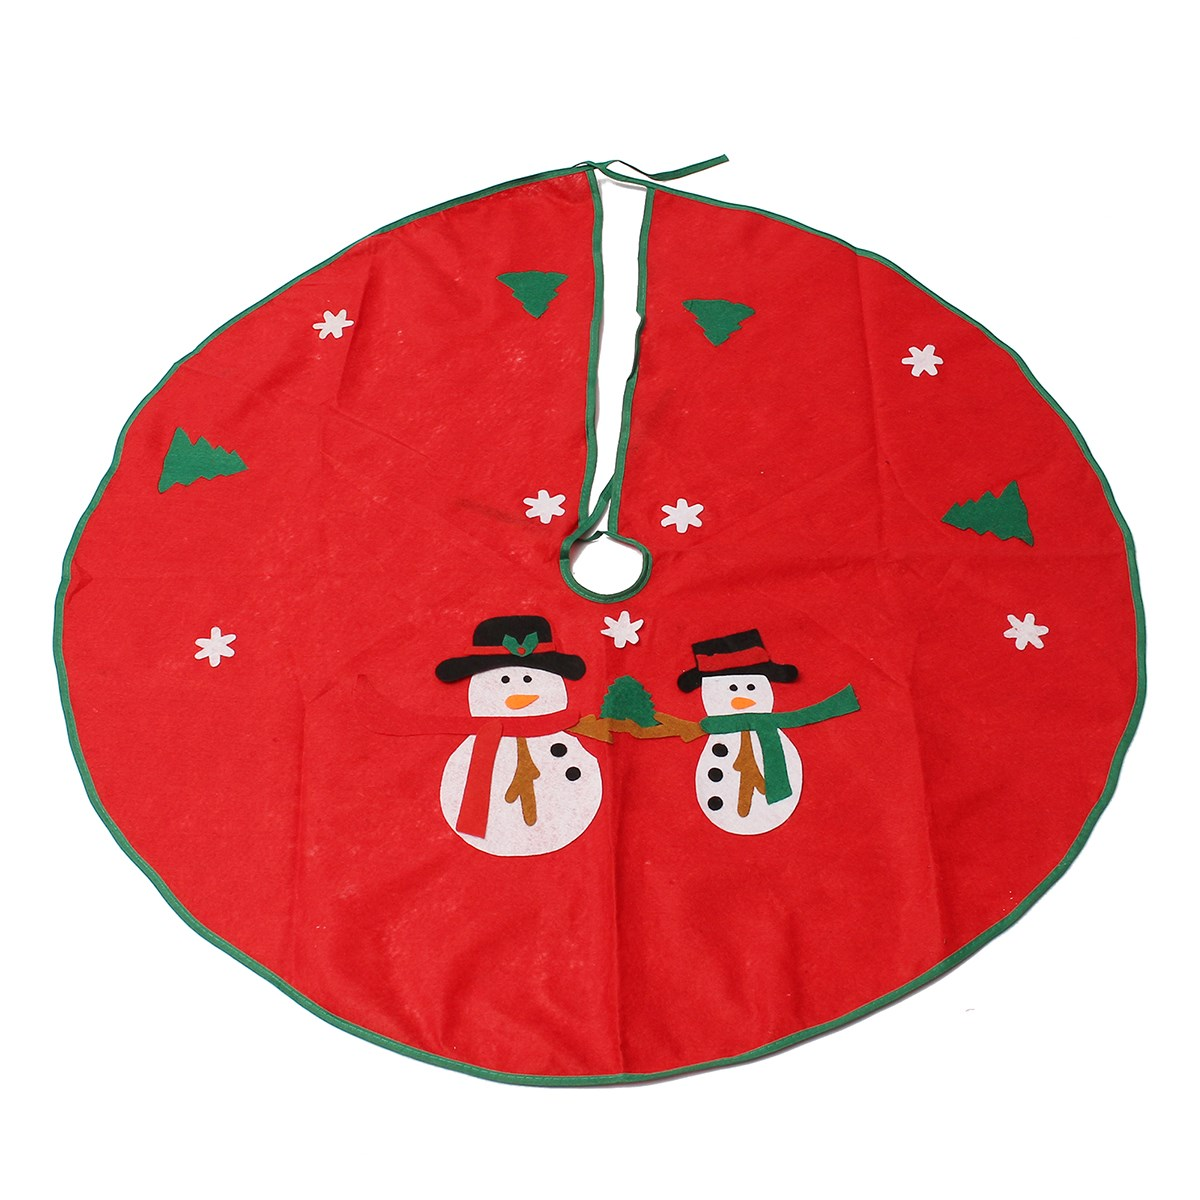 Christmas ornament holders - 90cm Snowman Christmas Tree Skirt Stands Ornaments Xmas Party Decoration Merry Christmas Happy New Year